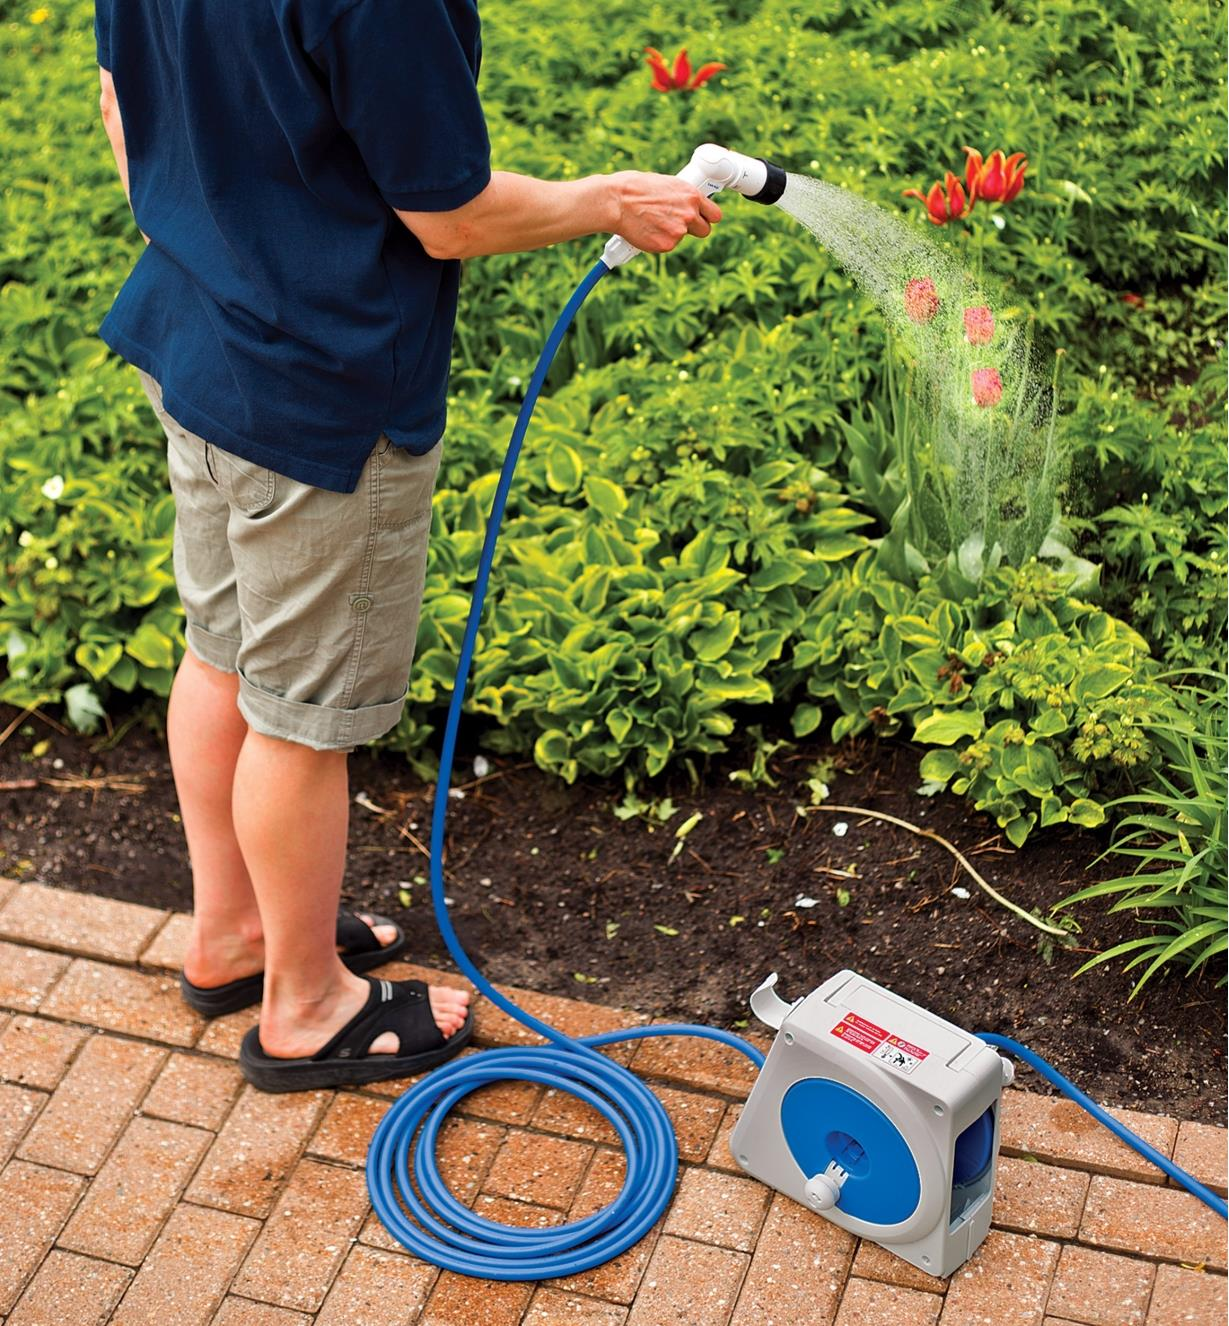 XC470 - Compact Hose & Reel